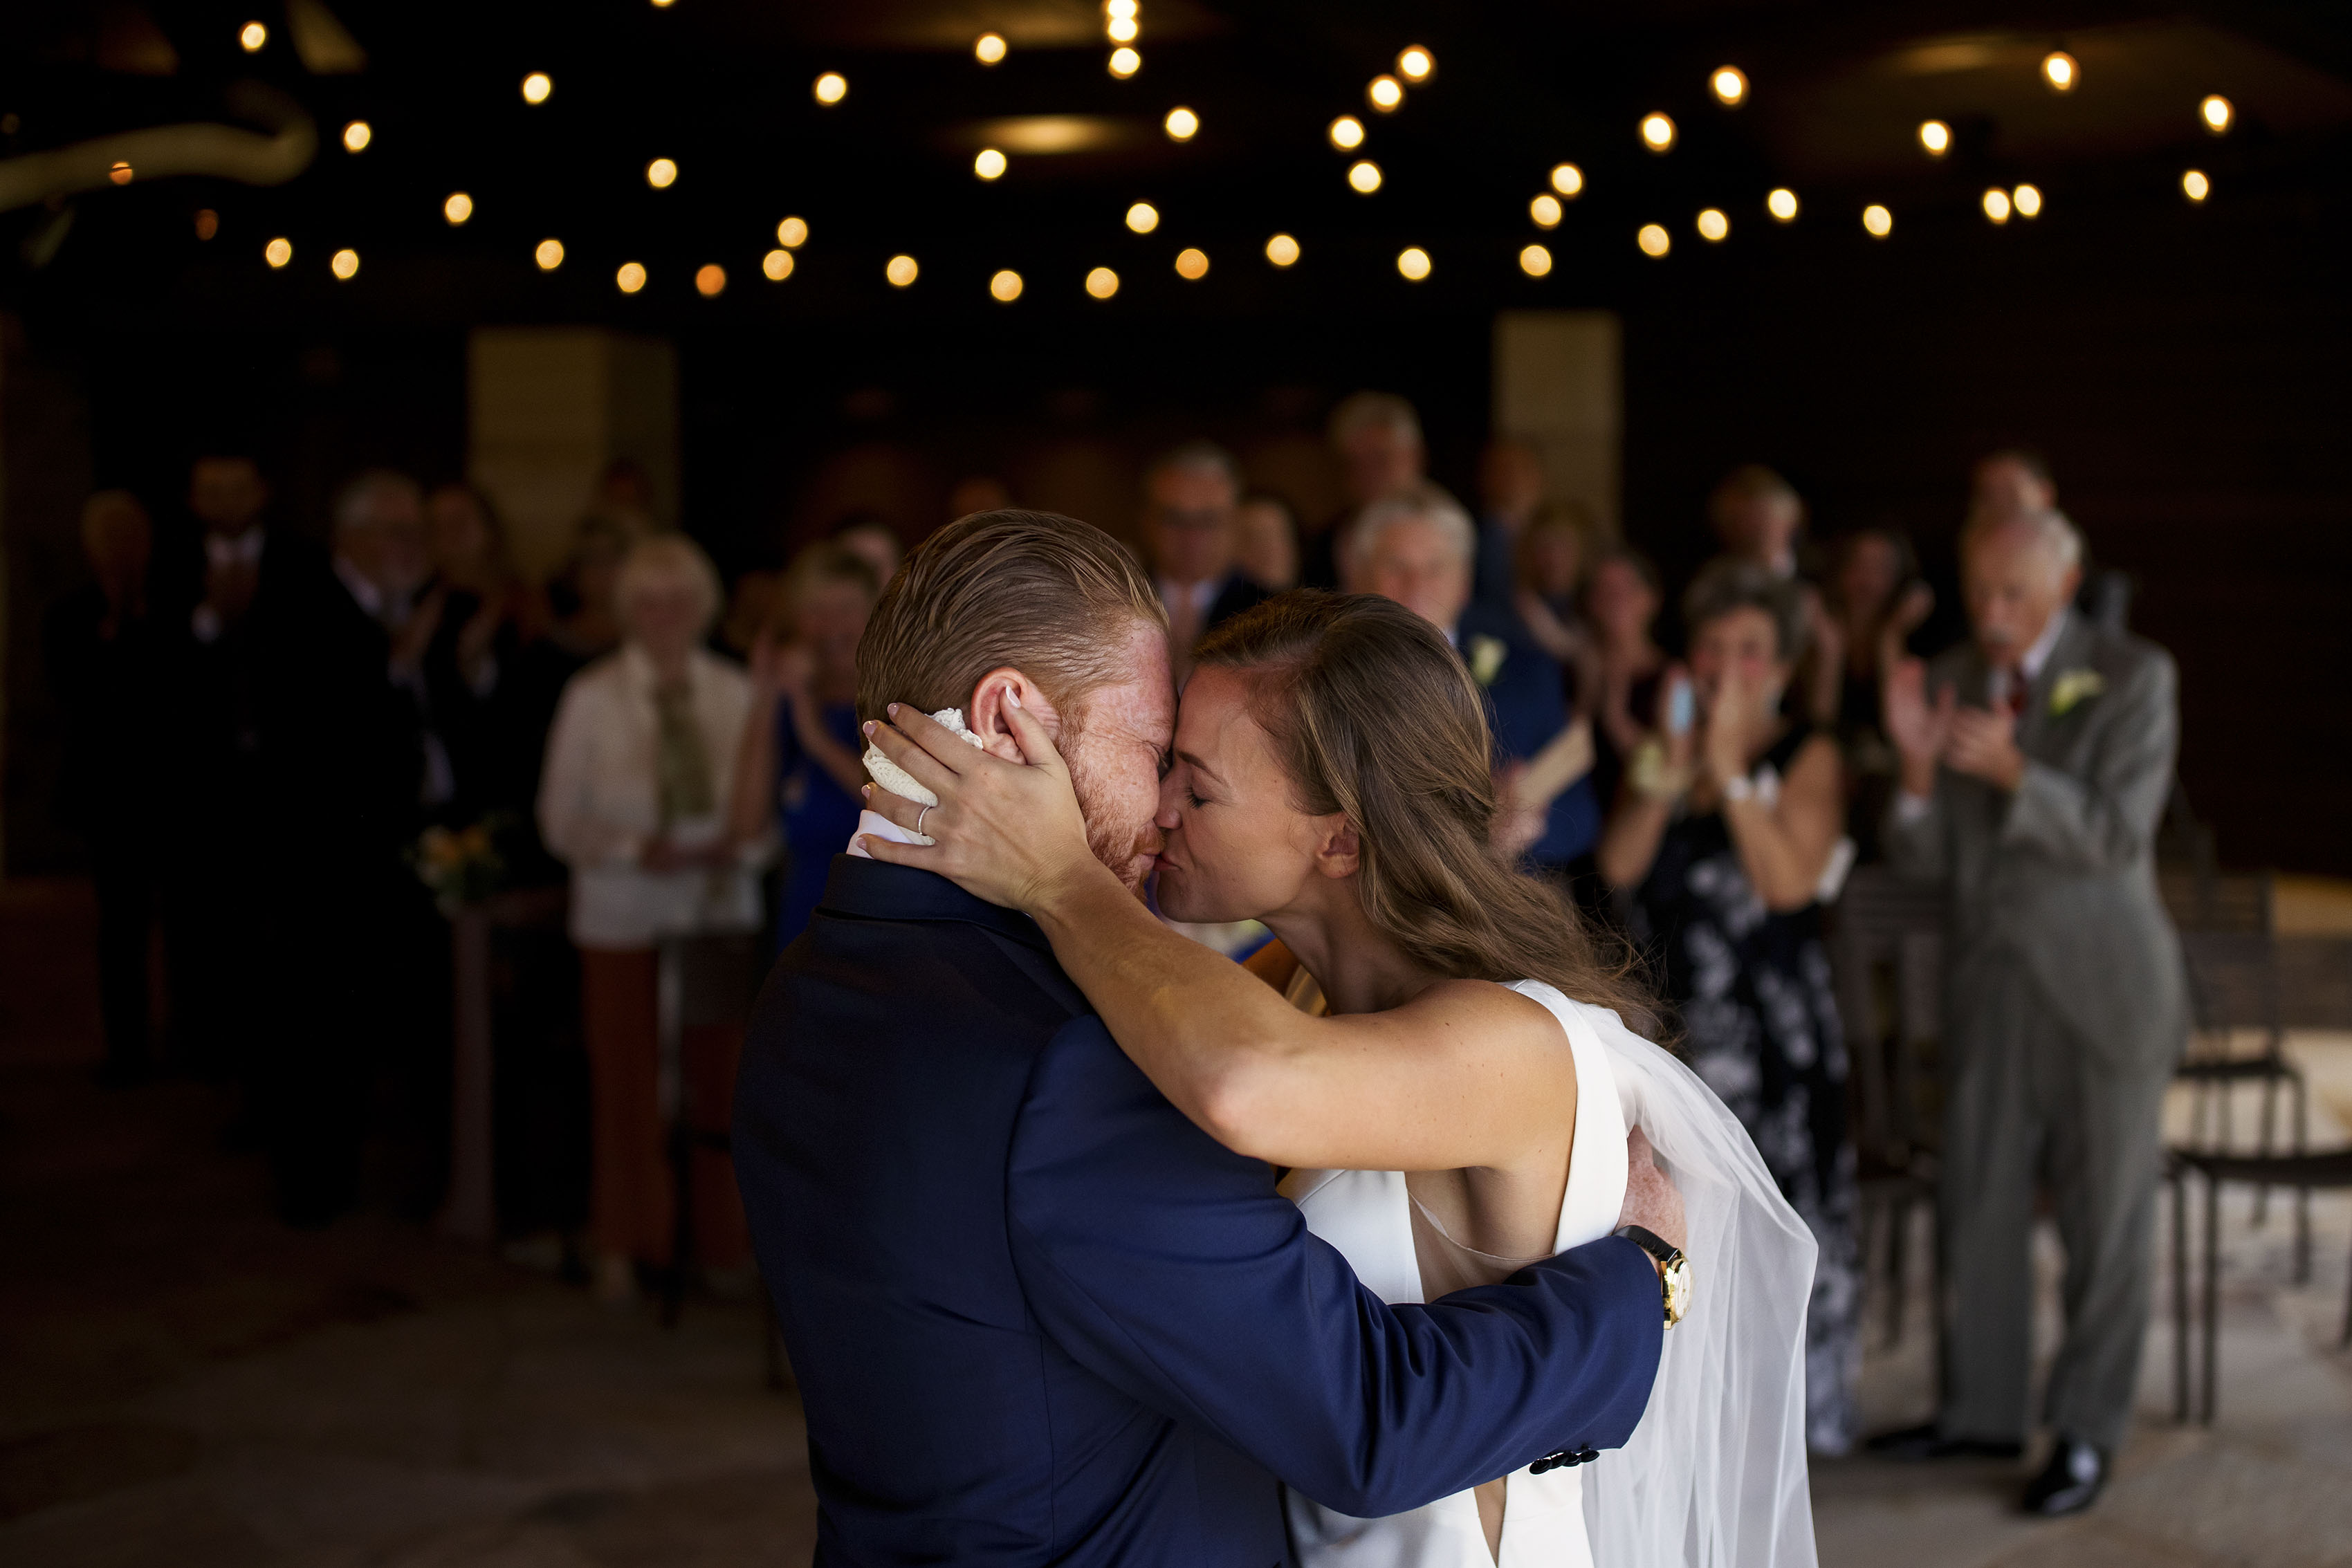 Casey and Darren's first kiss at Sanctuary during their wedding day